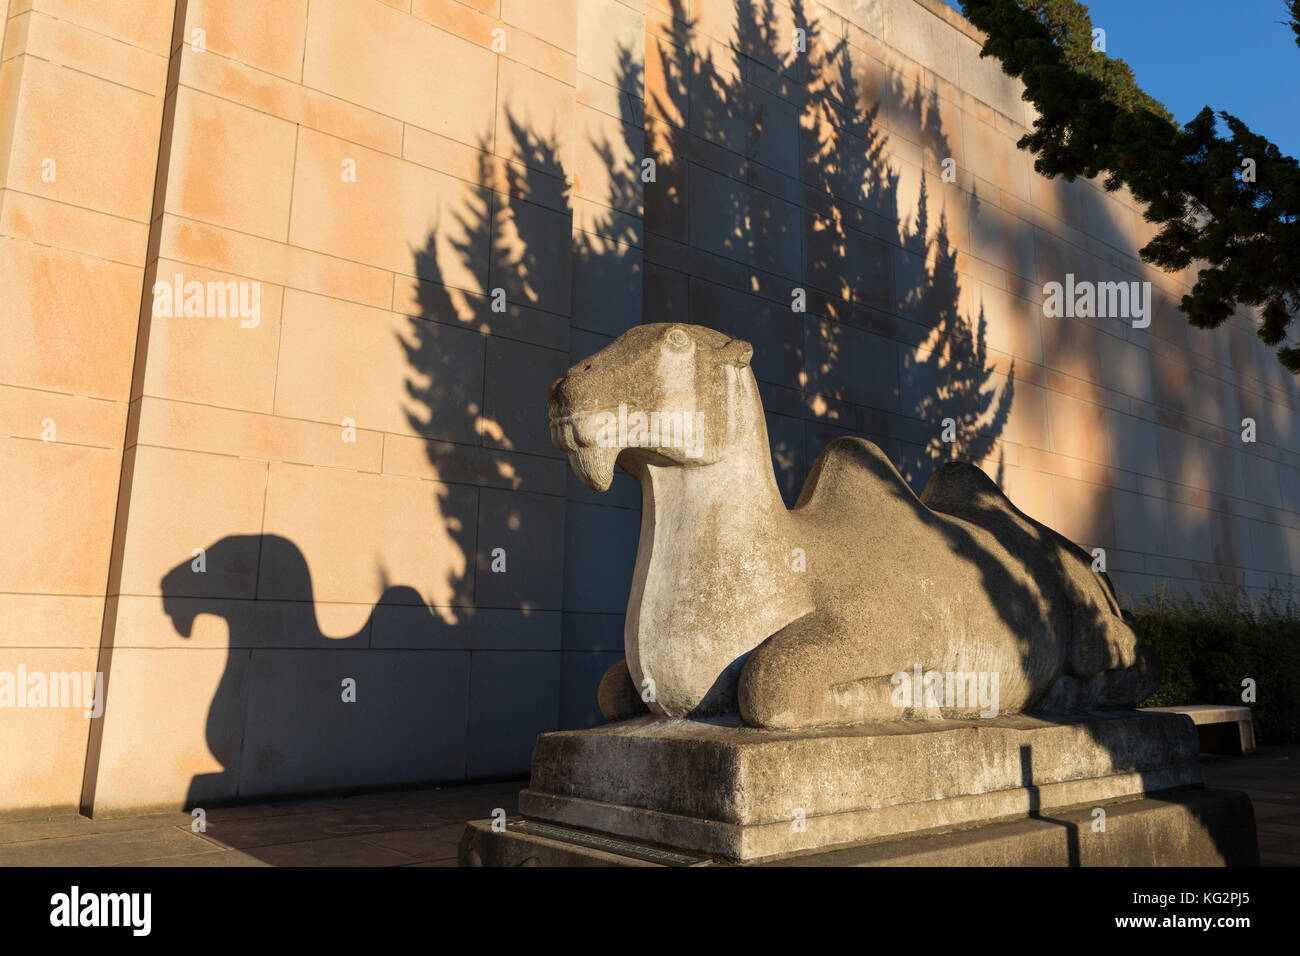 Seattle, Washington: Camel Sculpture casts a shadow on the Seattle Asian Art Museum at sunset. Stock Photo